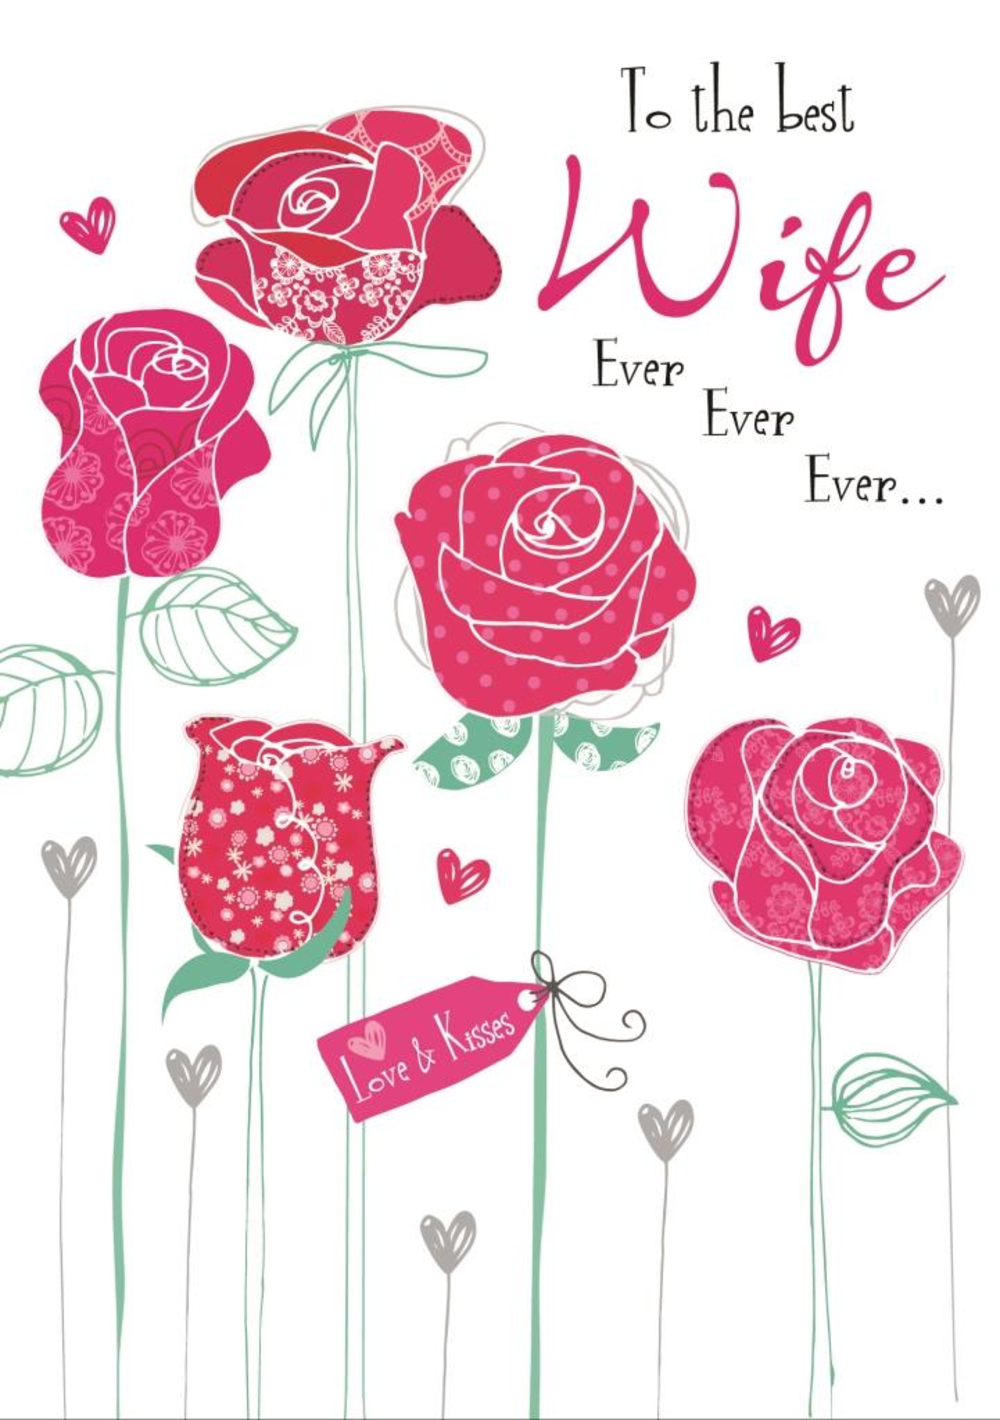 Best wife ever ever ever birthday greeting card cards love kates best wife ever ever ever birthday greeting card kristyandbryce Choice Image